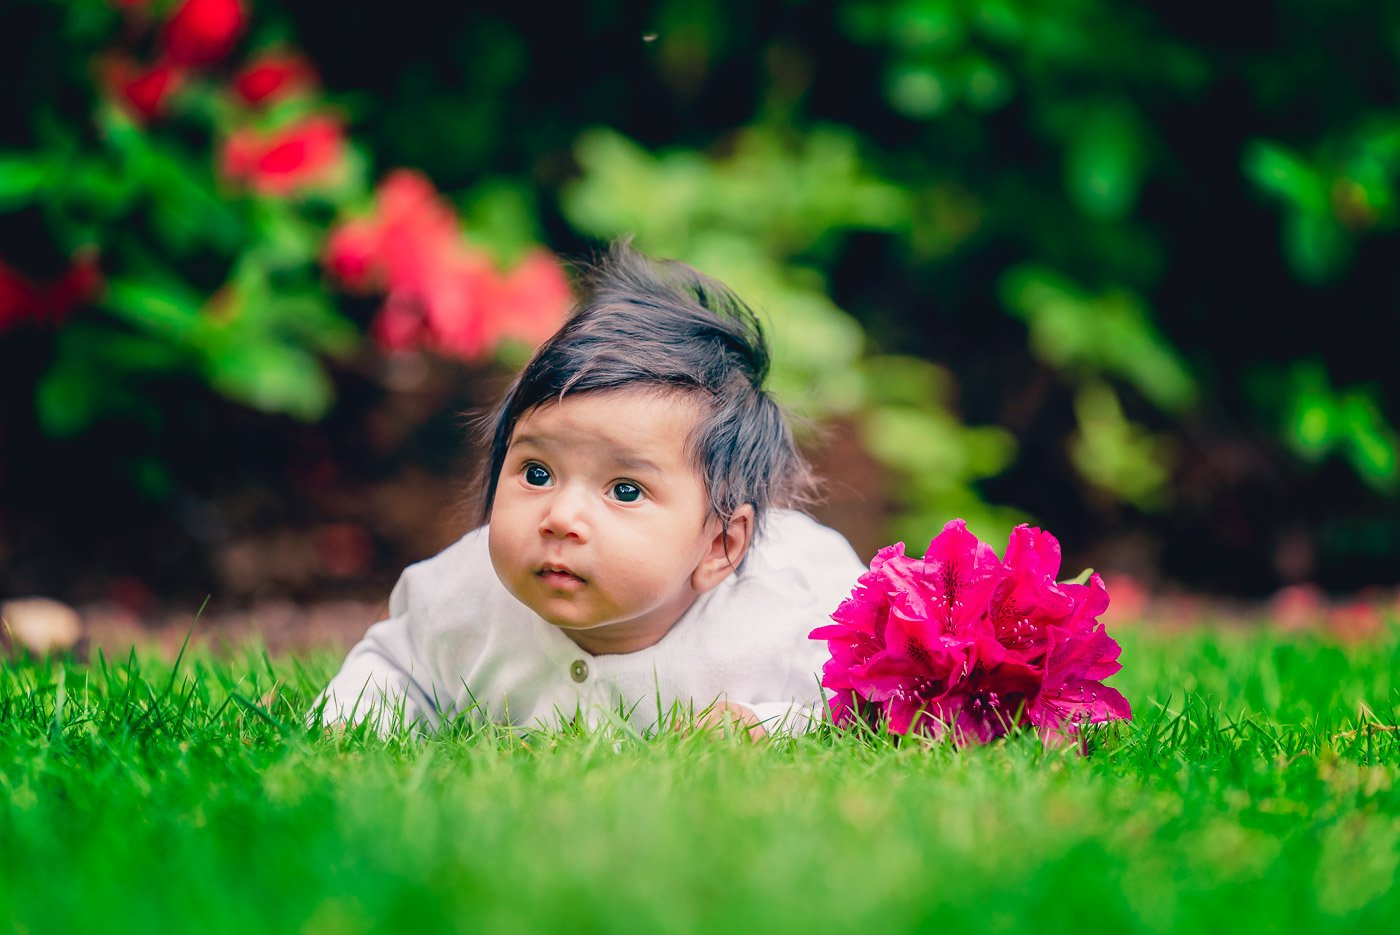 Baby girl with big sparkling eyes lying on mowed grass with large rhododendron flower